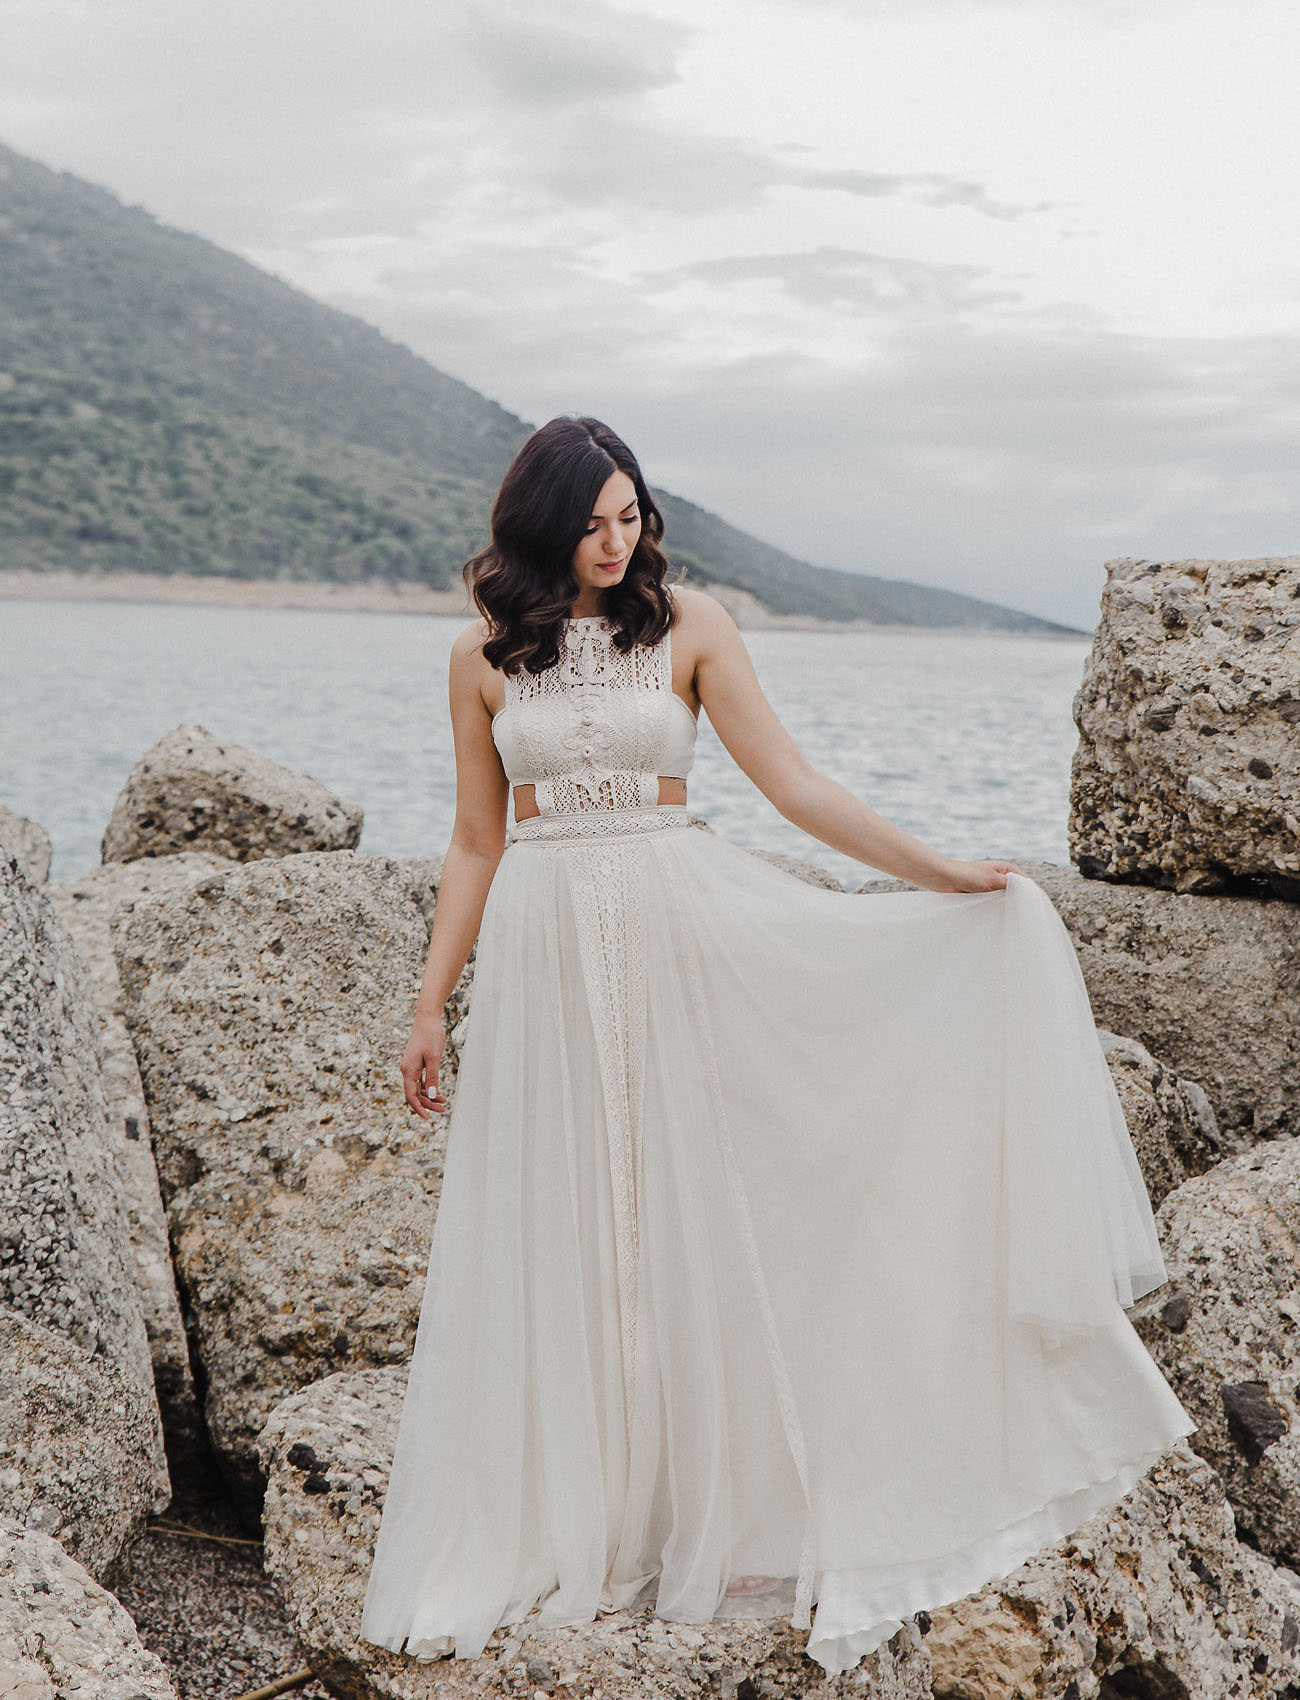 The wedding dress was an A line one, with a crochet bodice and a plain skirt with a small train